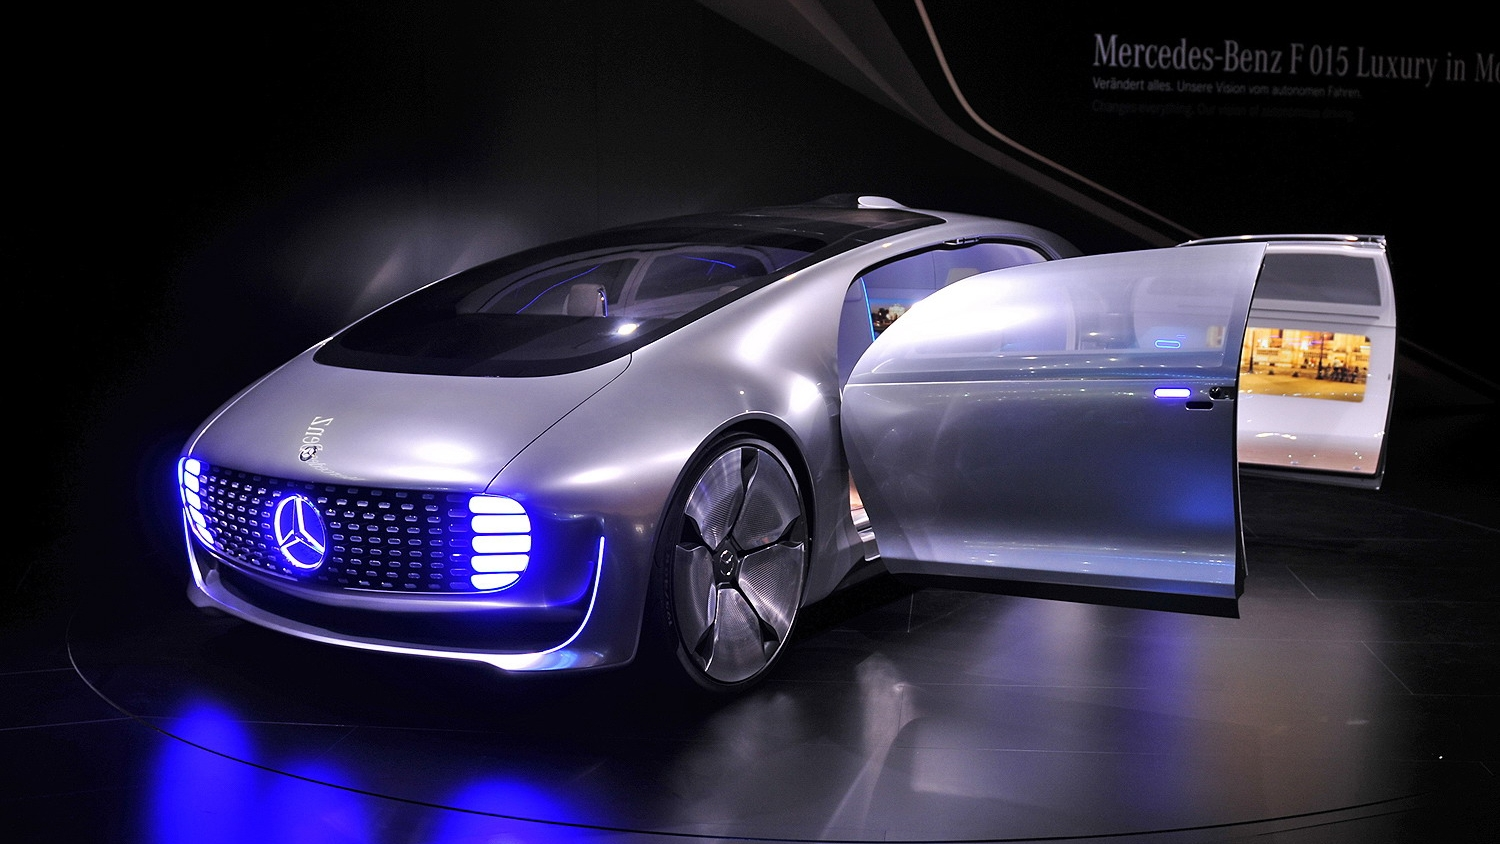 2015 mercedes benz f 015 luxury in motion review top speed for Mercedes benz f